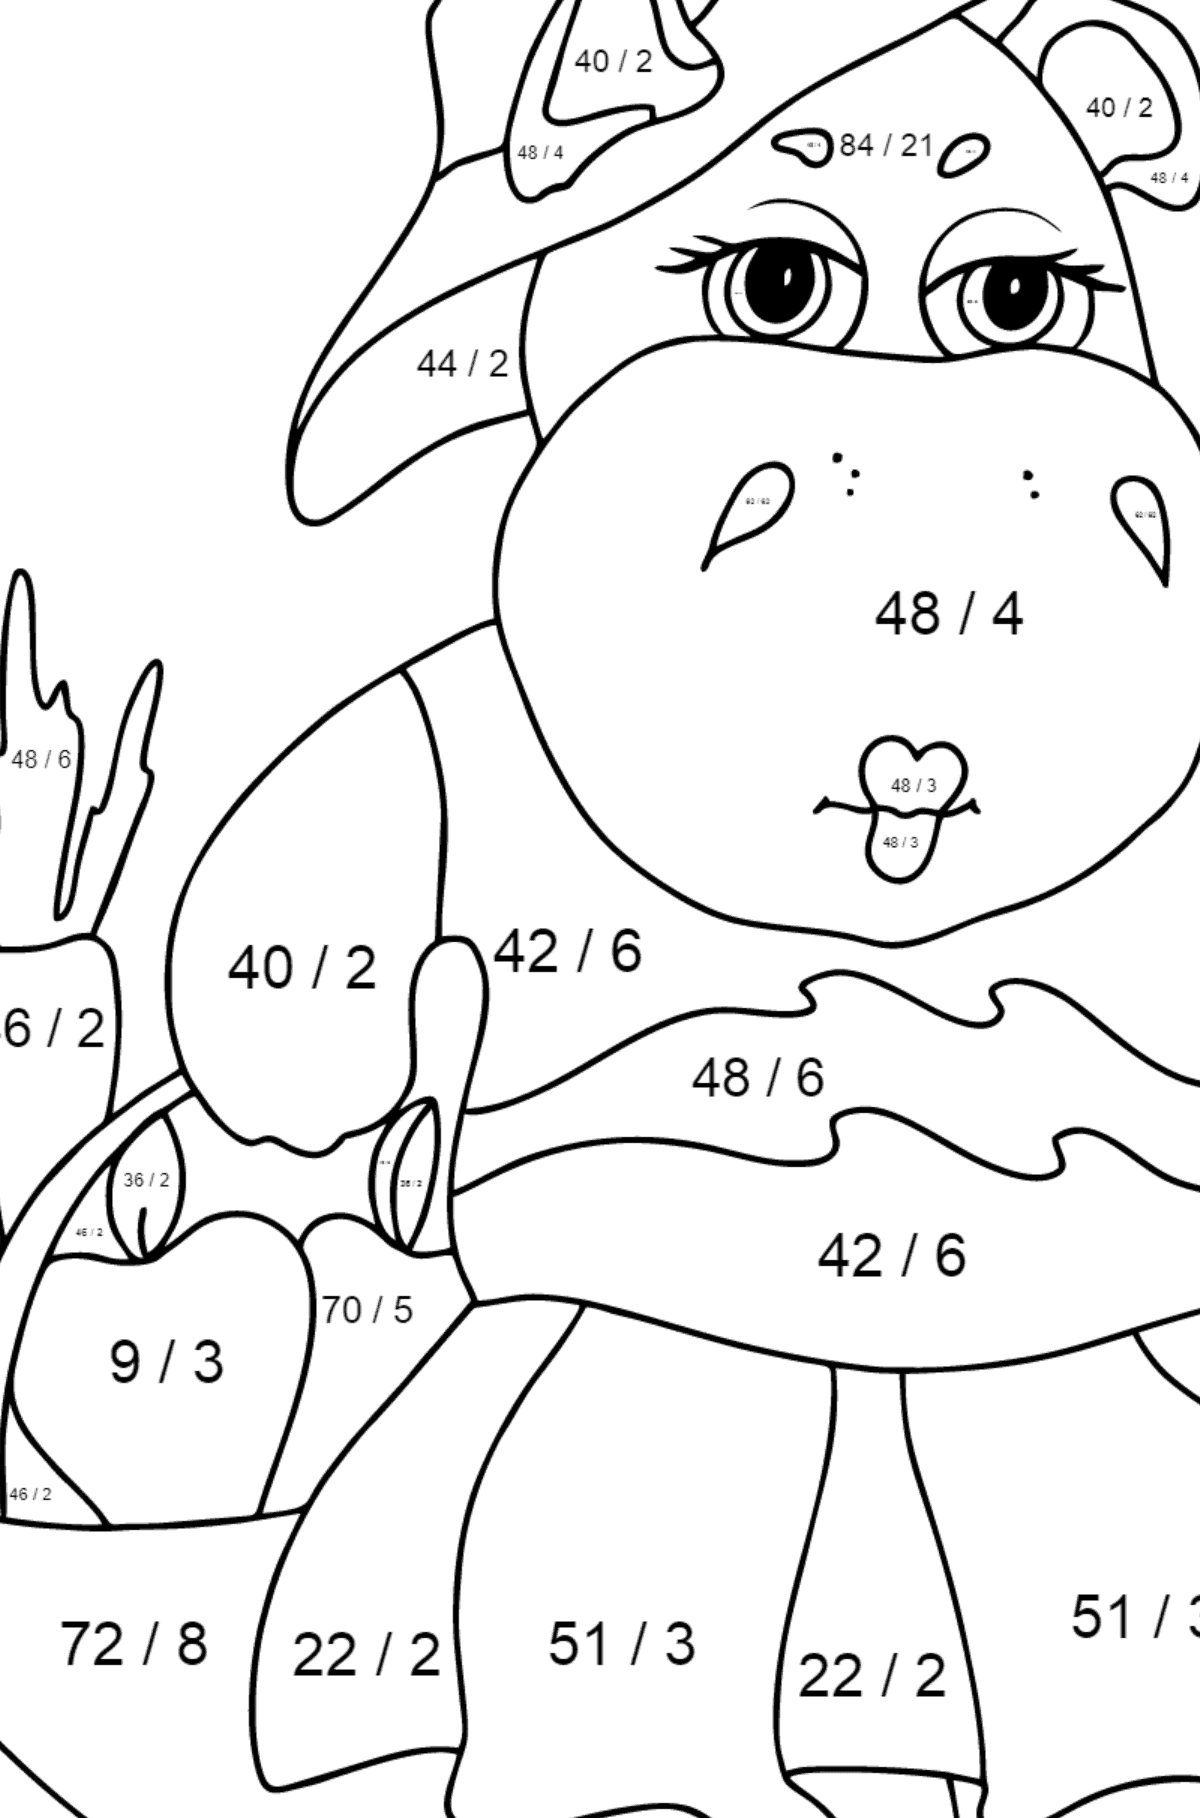 Coloring Page - A Hippo with a Crop Basket for Kids  - Color by Number Division